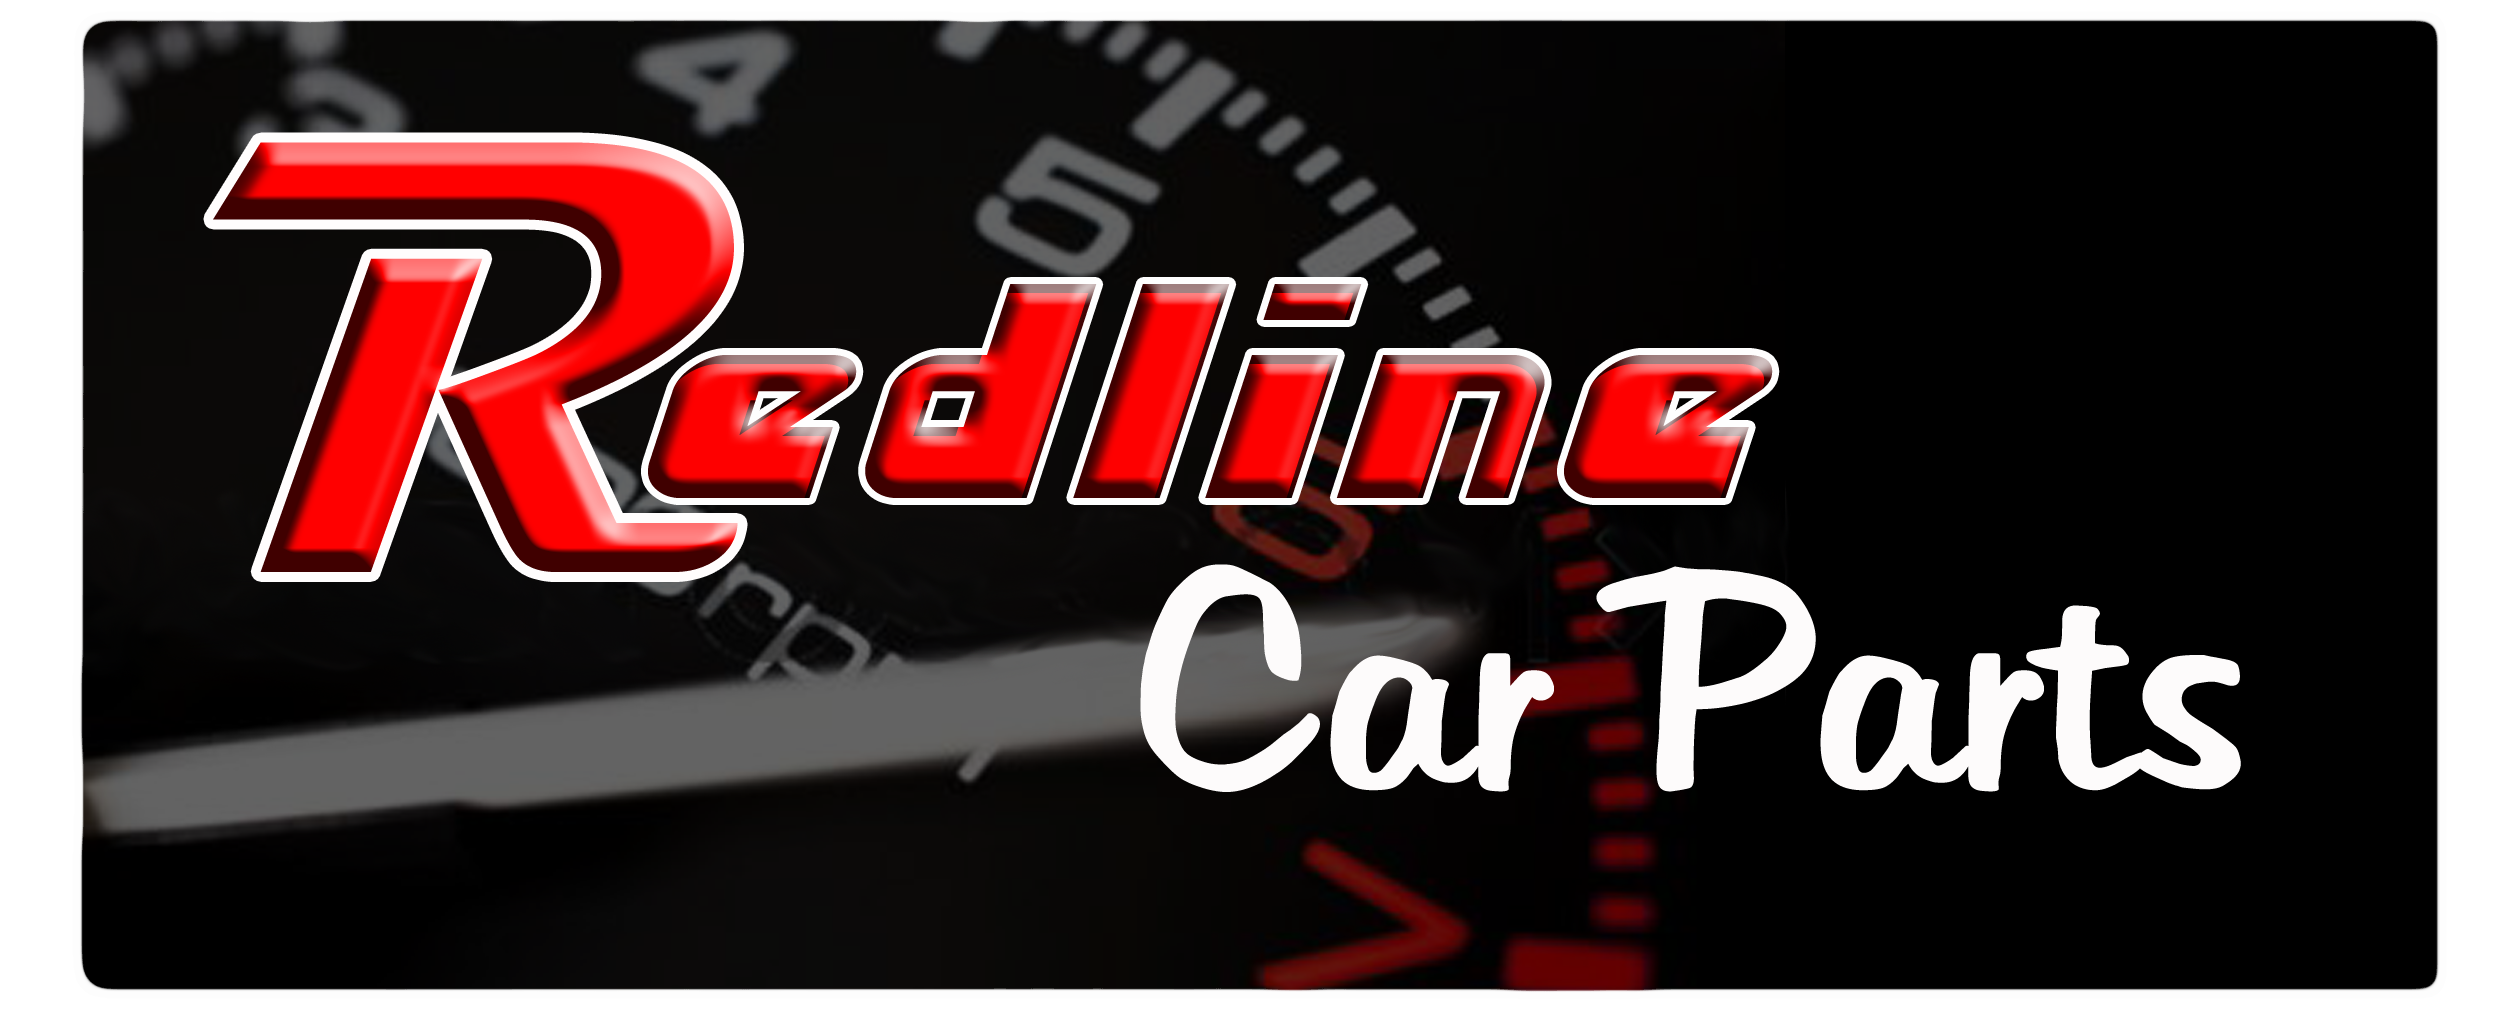 Redline Car Parts Limited